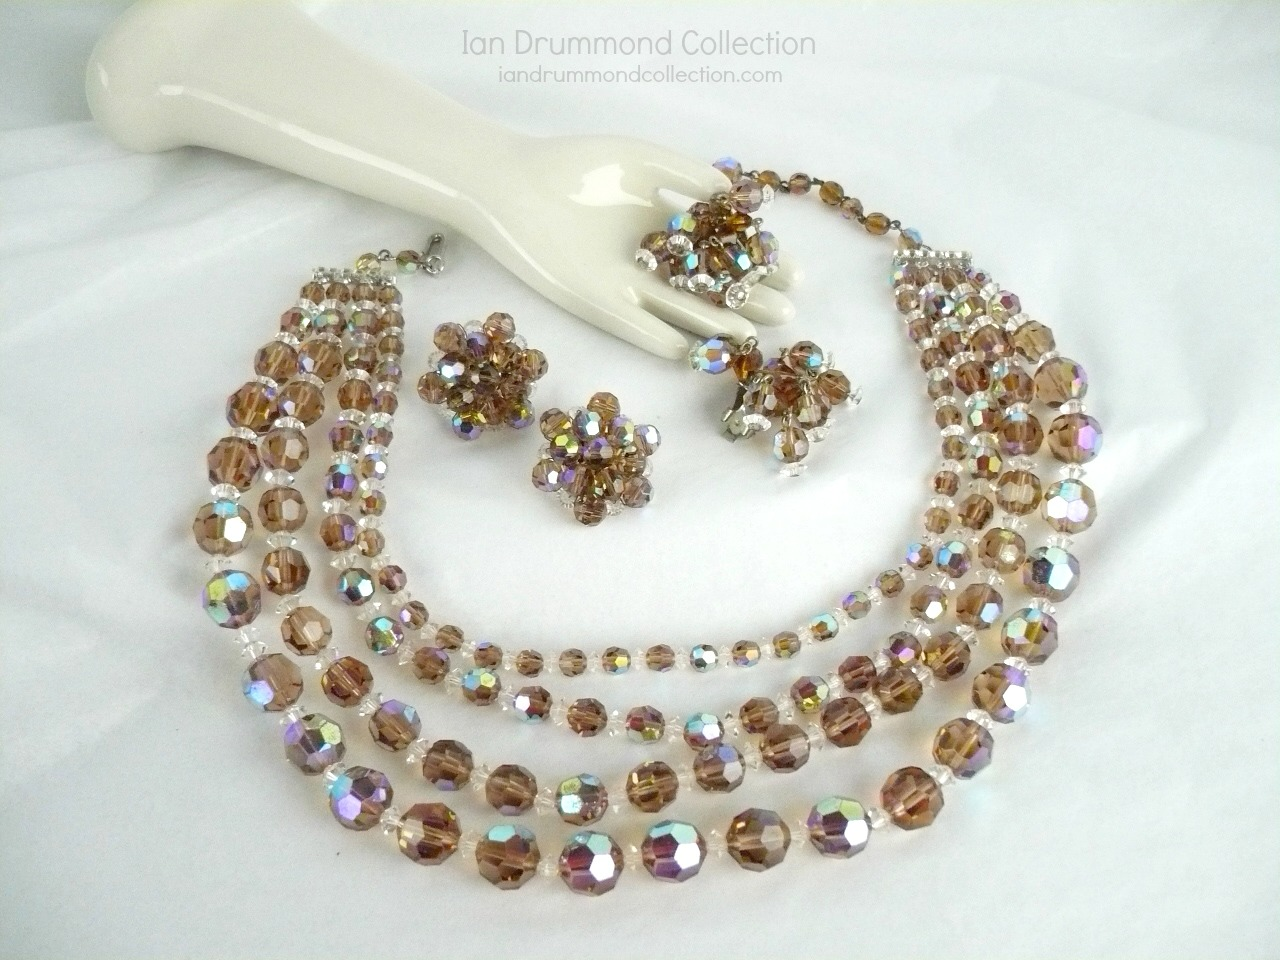 Ian Drummond Collection IDC Vintage Toronto Movie TV Wardrobe Rental jewellery 3 pc set Unsigned 5